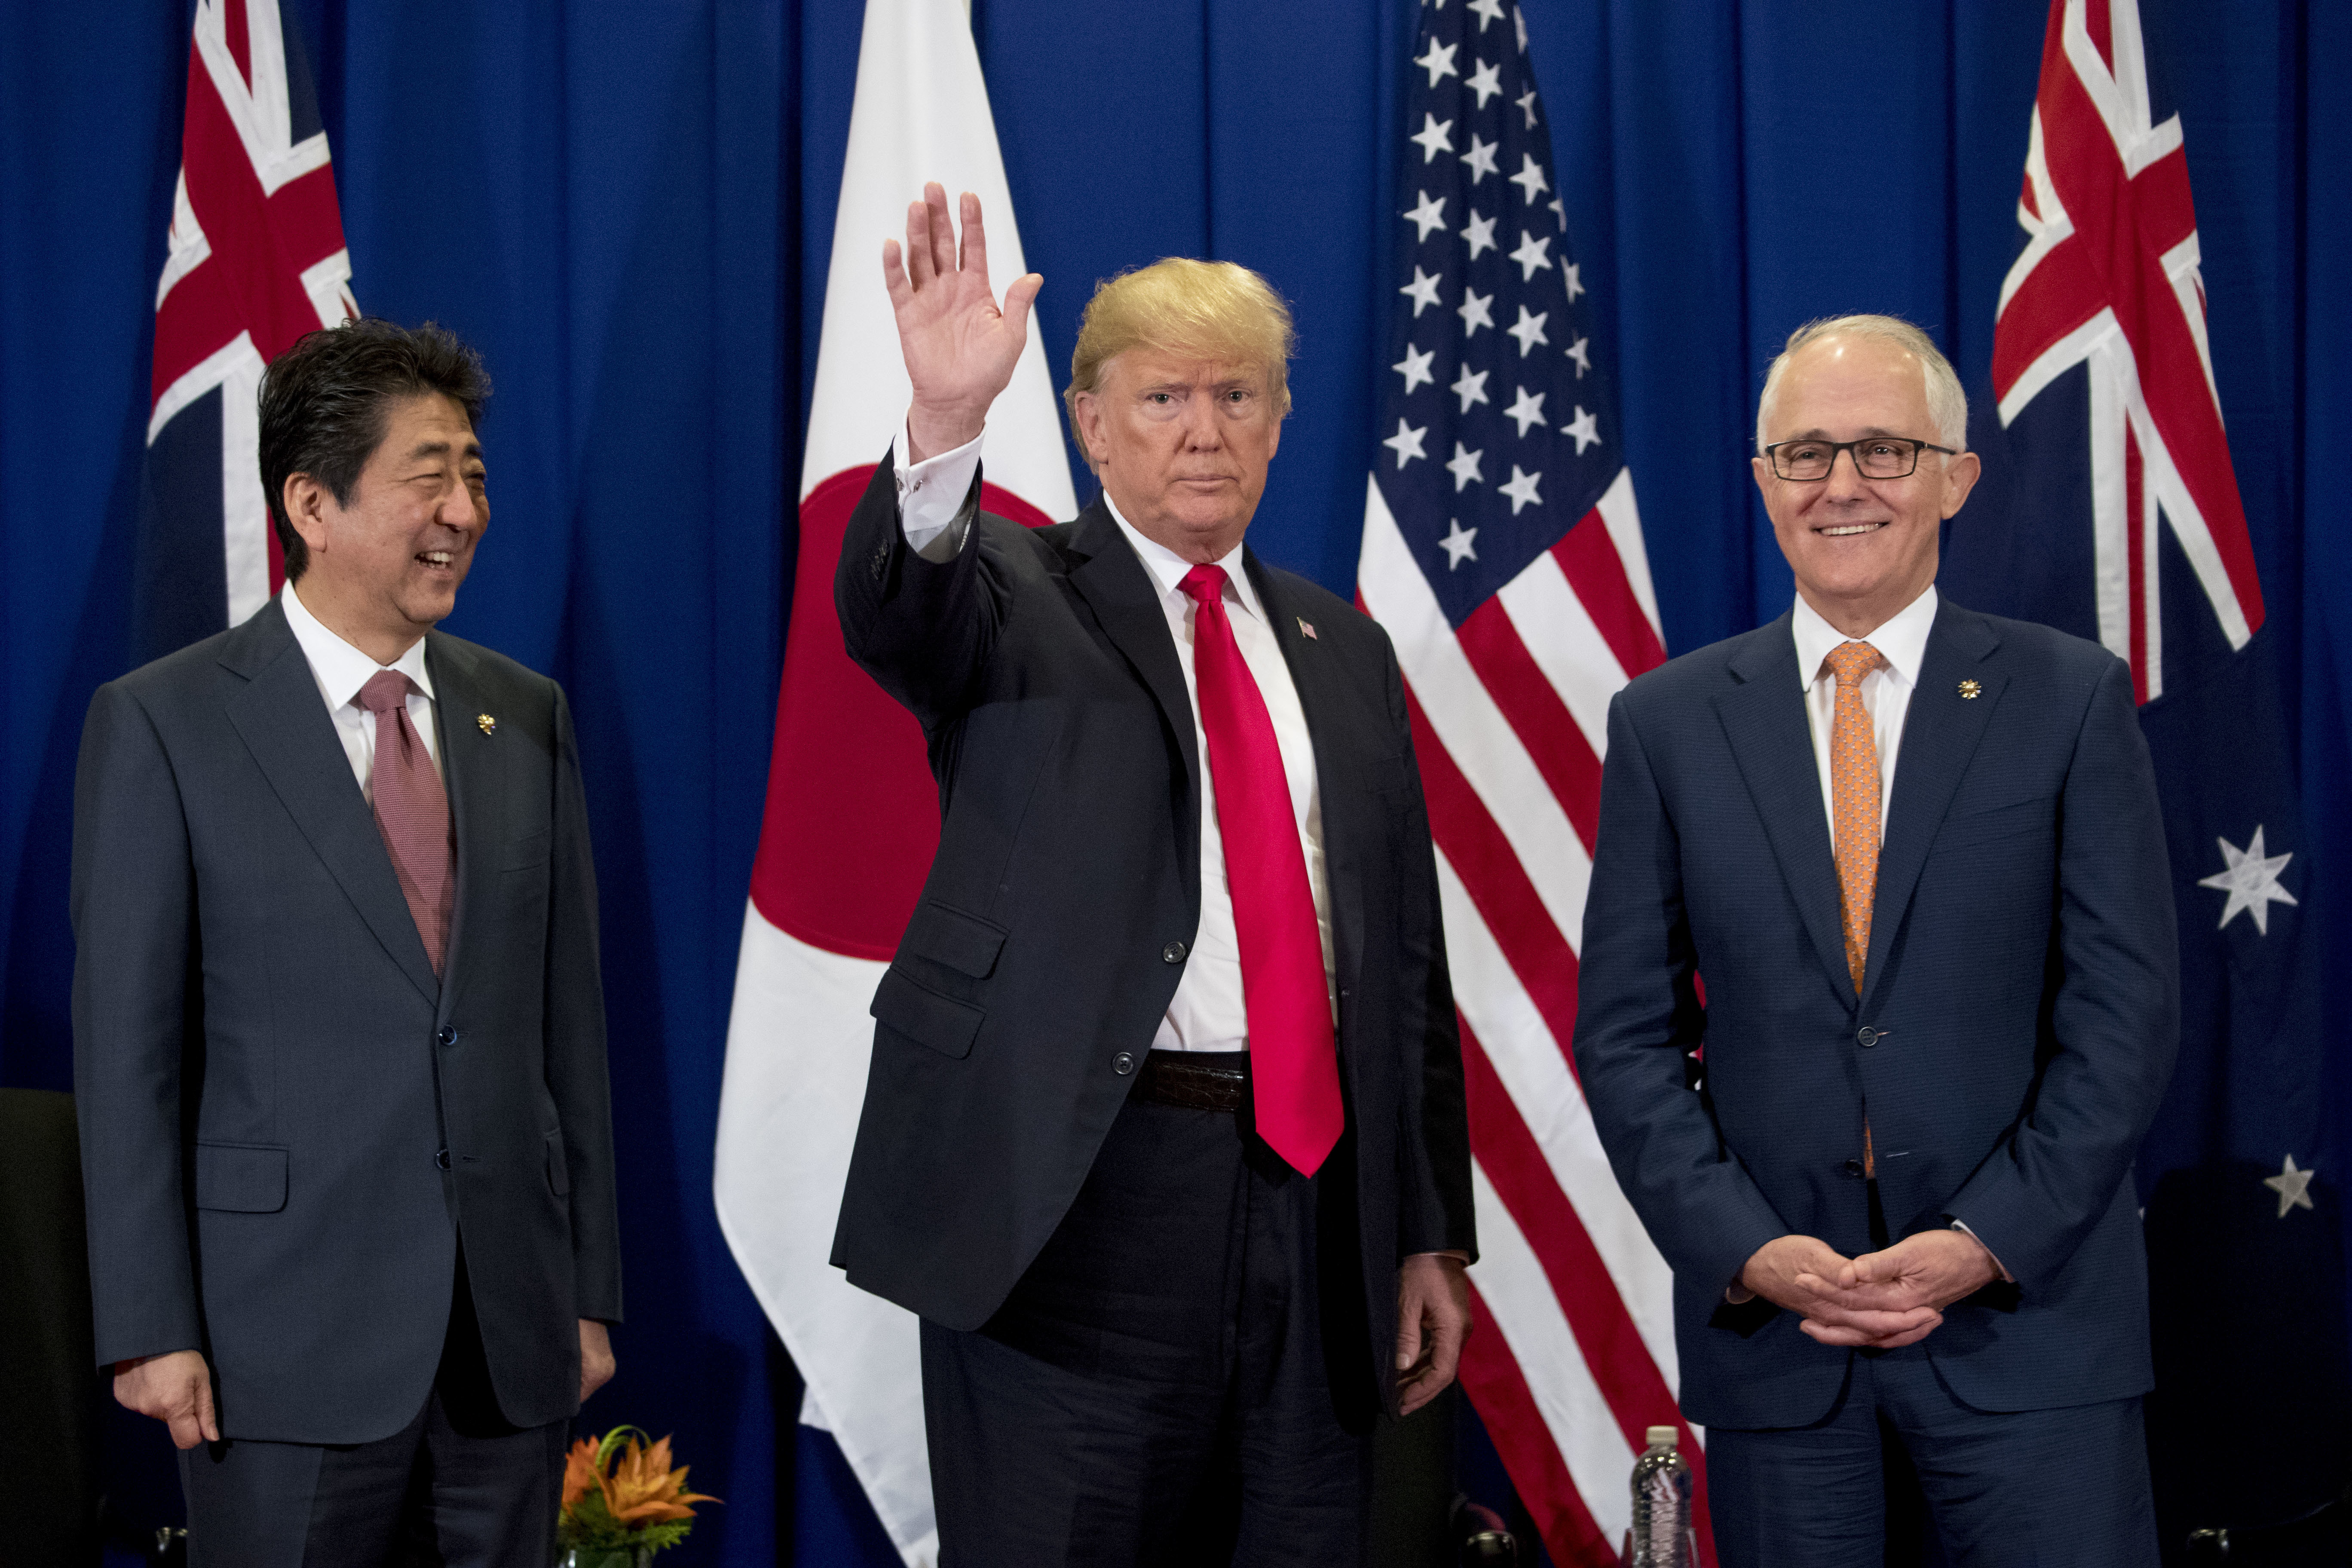 President Donald Trump, accompanied by Japanese Prime Minister Shinzo Abe, left, and Australian Prime Minister Malcolm Turnbull, right, waves to reporters at a meeting during the ASEAN Summit at the Sofitel Philippine Plaza, Monday, Nov. 13, 2017, in...